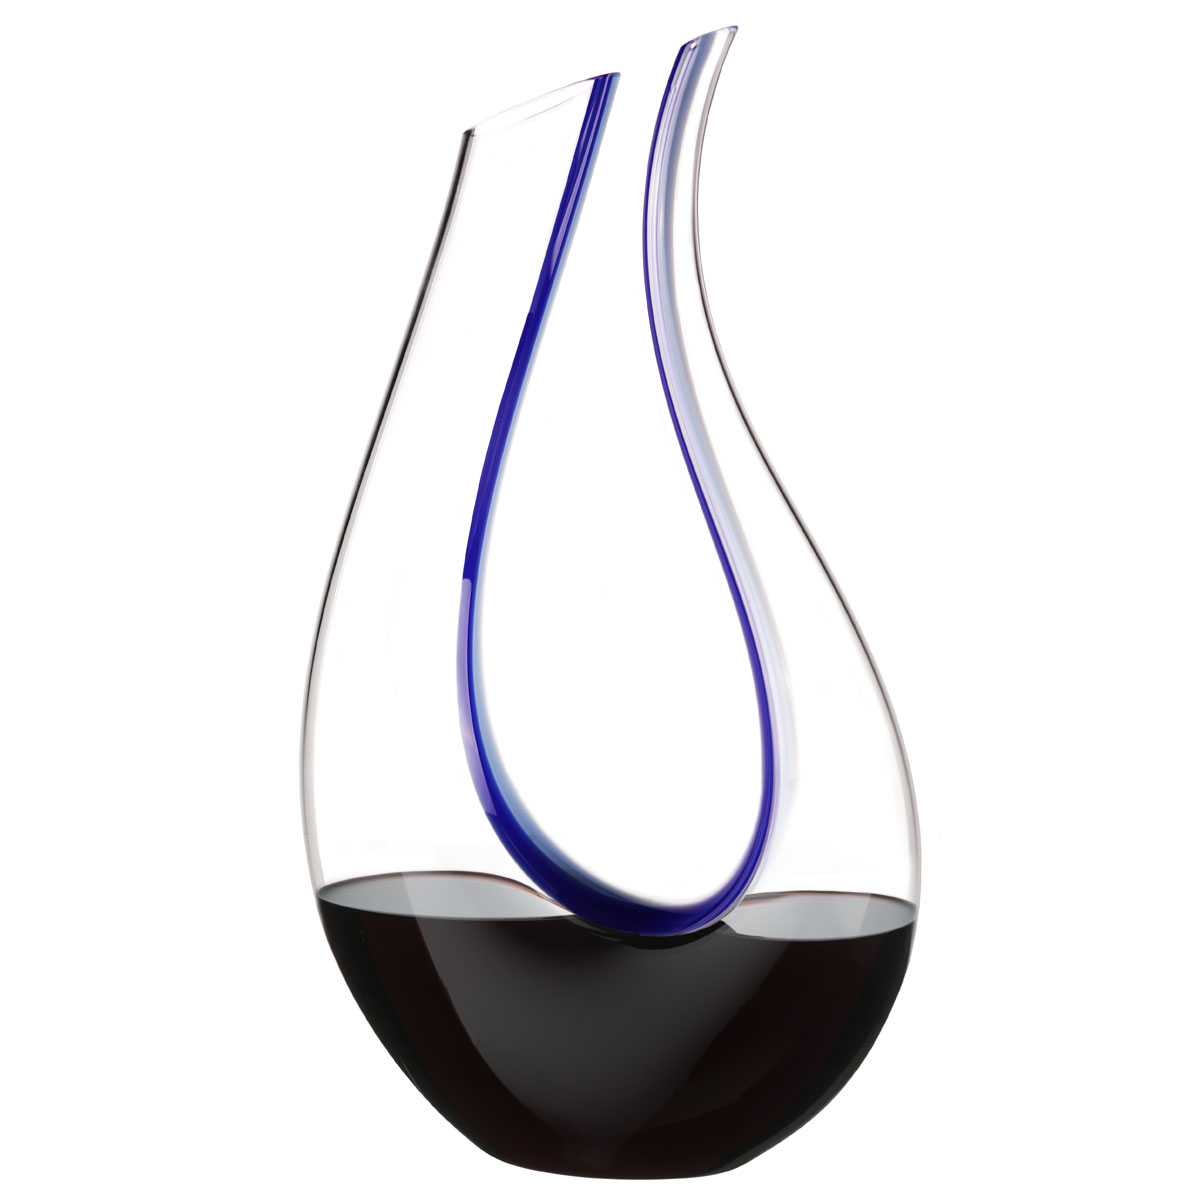 Riedel Amadeo Lapis Lazuli Blue Wine Decanter, Limited Edition